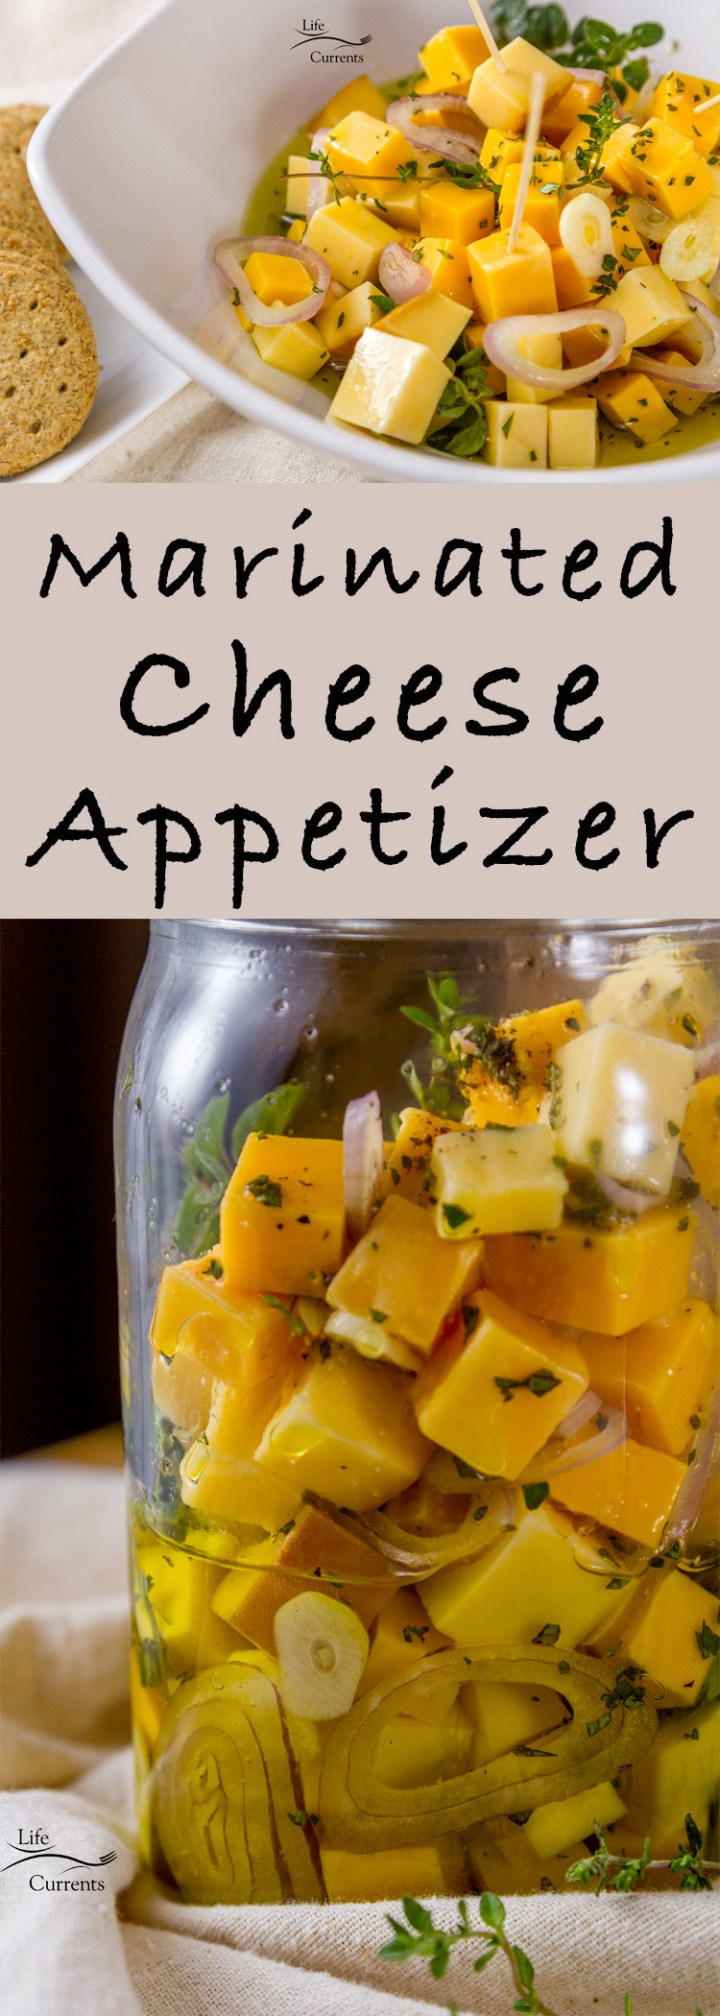 Marinated Cheese and Herbs Appetizer long pin for Pinterest with 2 images in a bowl and in a jar